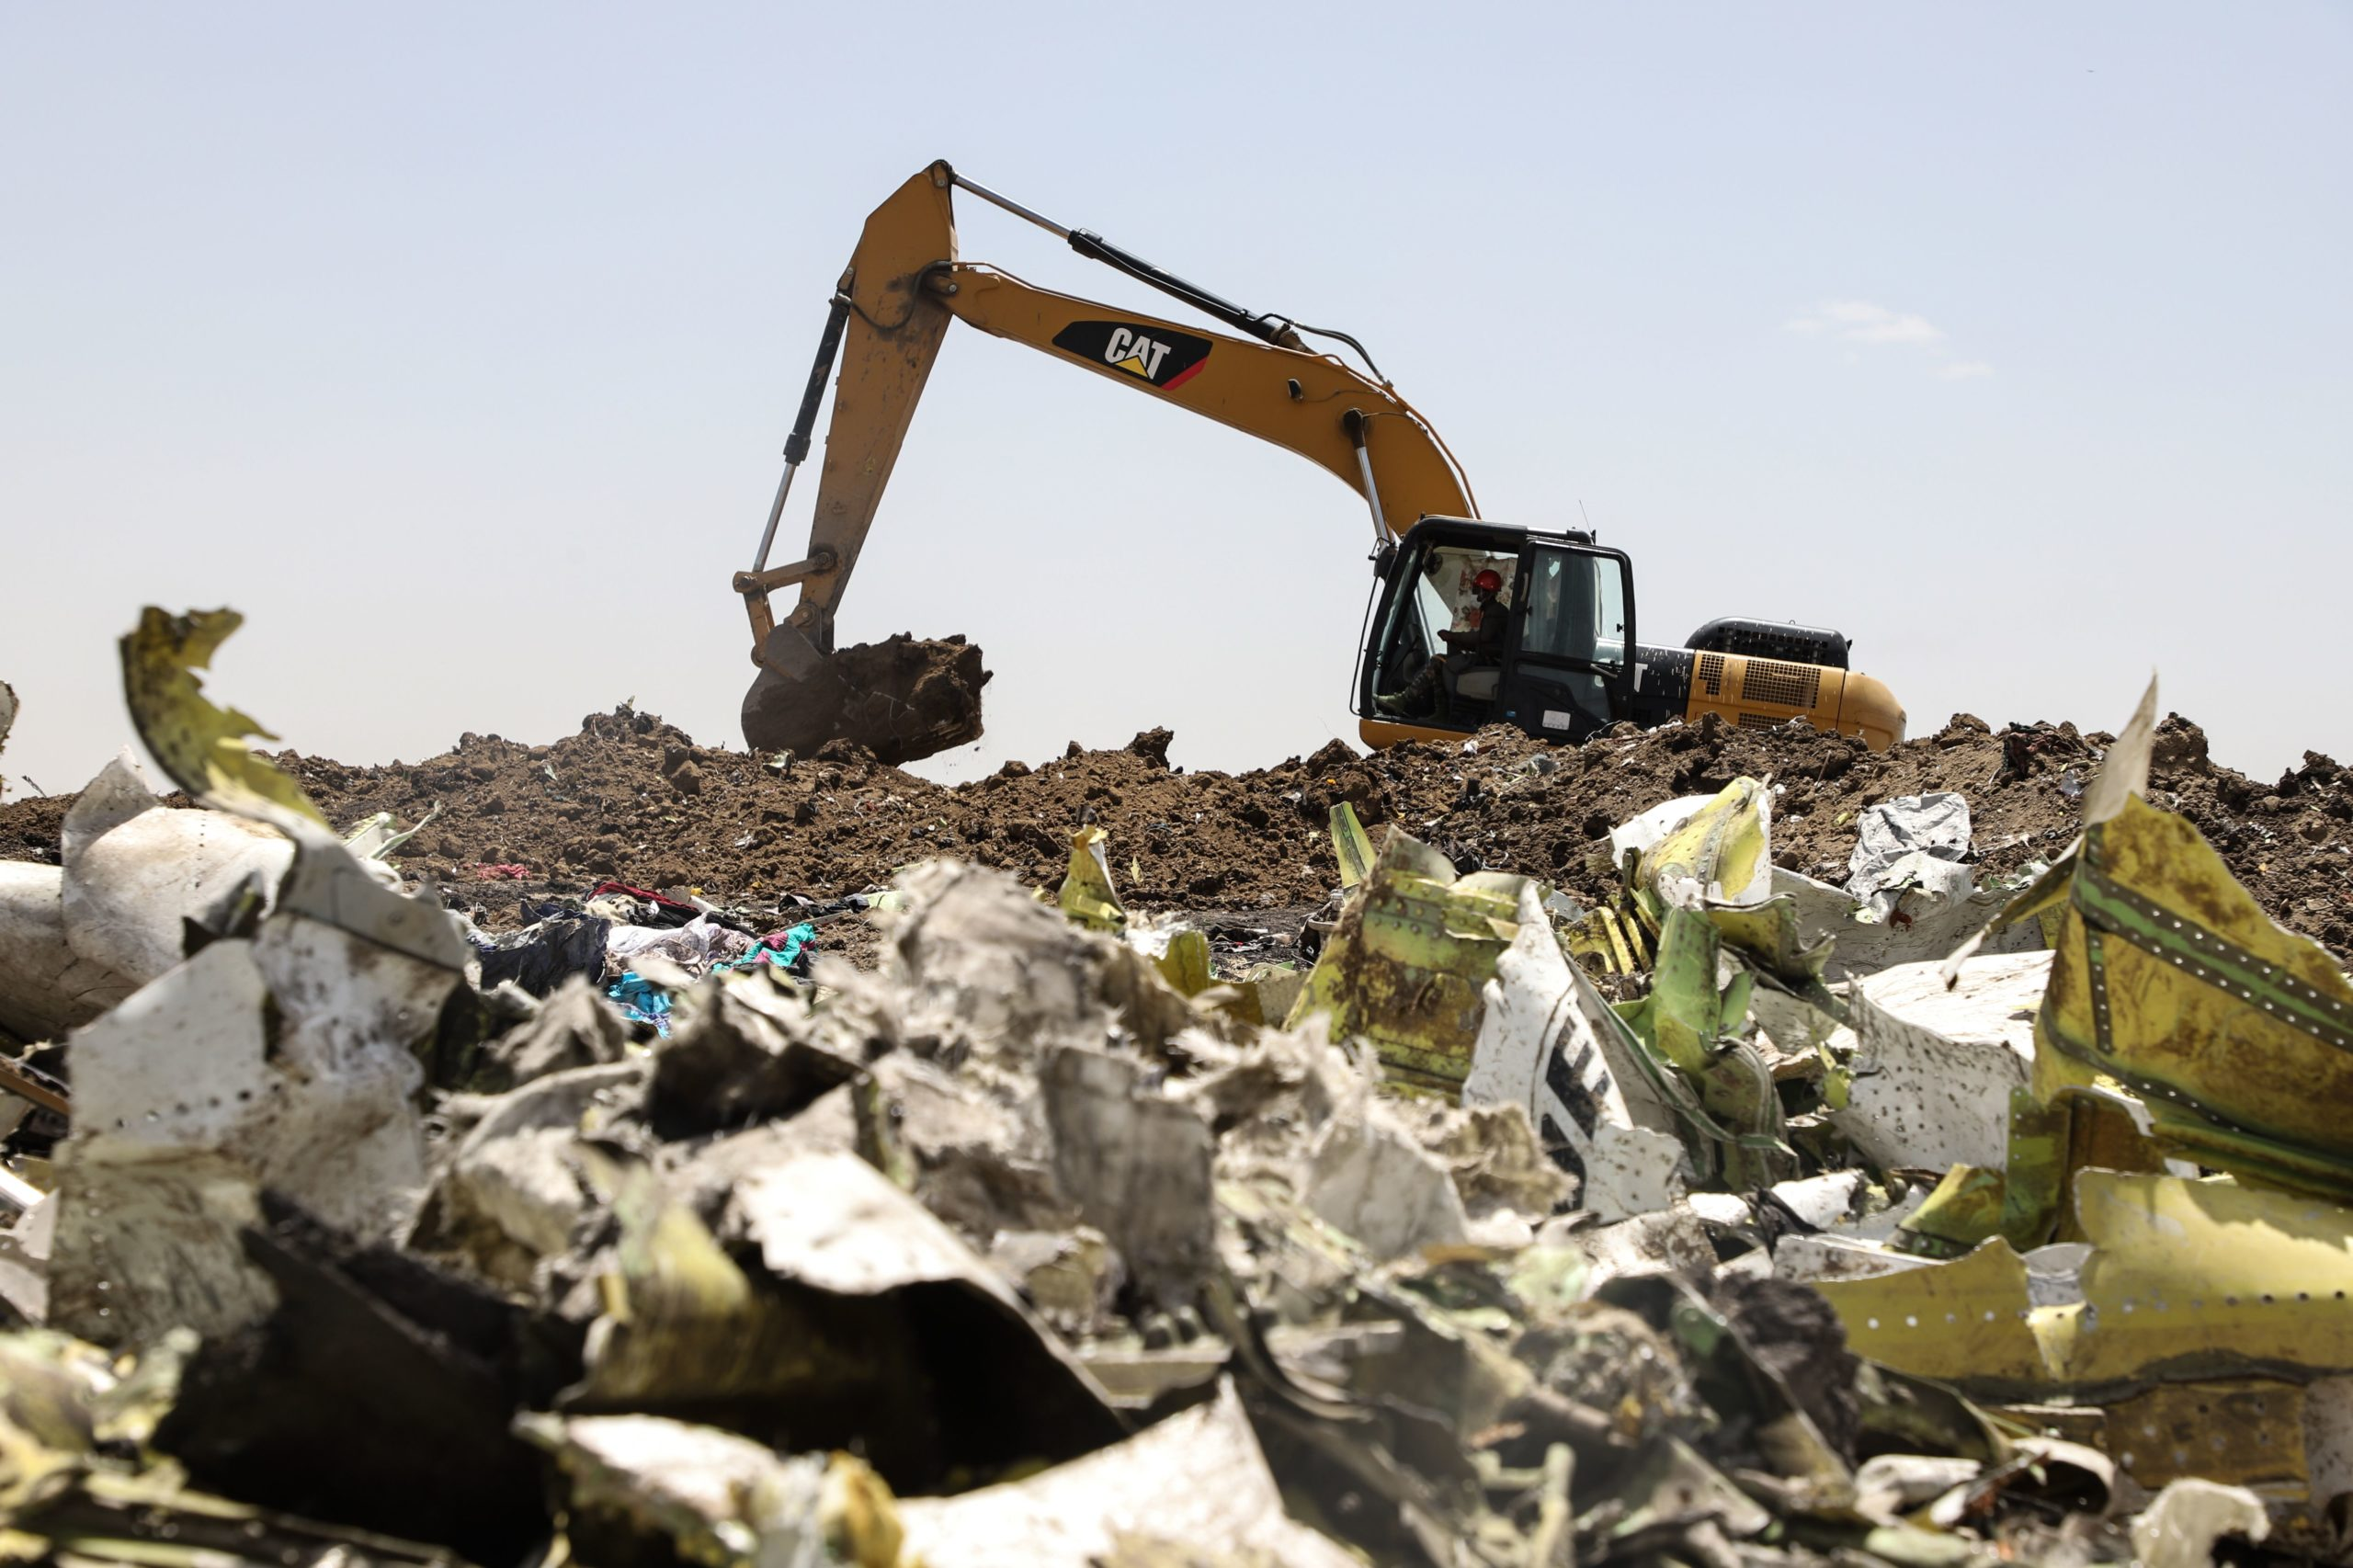 A power shovel digs at the crash site of Ethiopia Airlines near Bishoftu, a town some 60 kilometres southeast of Addis Ababa, Ethiopia, on March 11, 2019. - Airlines in Ethiopia, China and Indonesia grounded Boeing 737 MAX 8 jets Monday as investigators recovered the black boxes from a brand-new passenger jet that crashed outside Addis Ababa a day earlier, killing all 157 people on board. (Photo by Michael TEWELDE / AFP) (Photo credit should read MICHAEL TEWELDE/AFP via Getty Images)